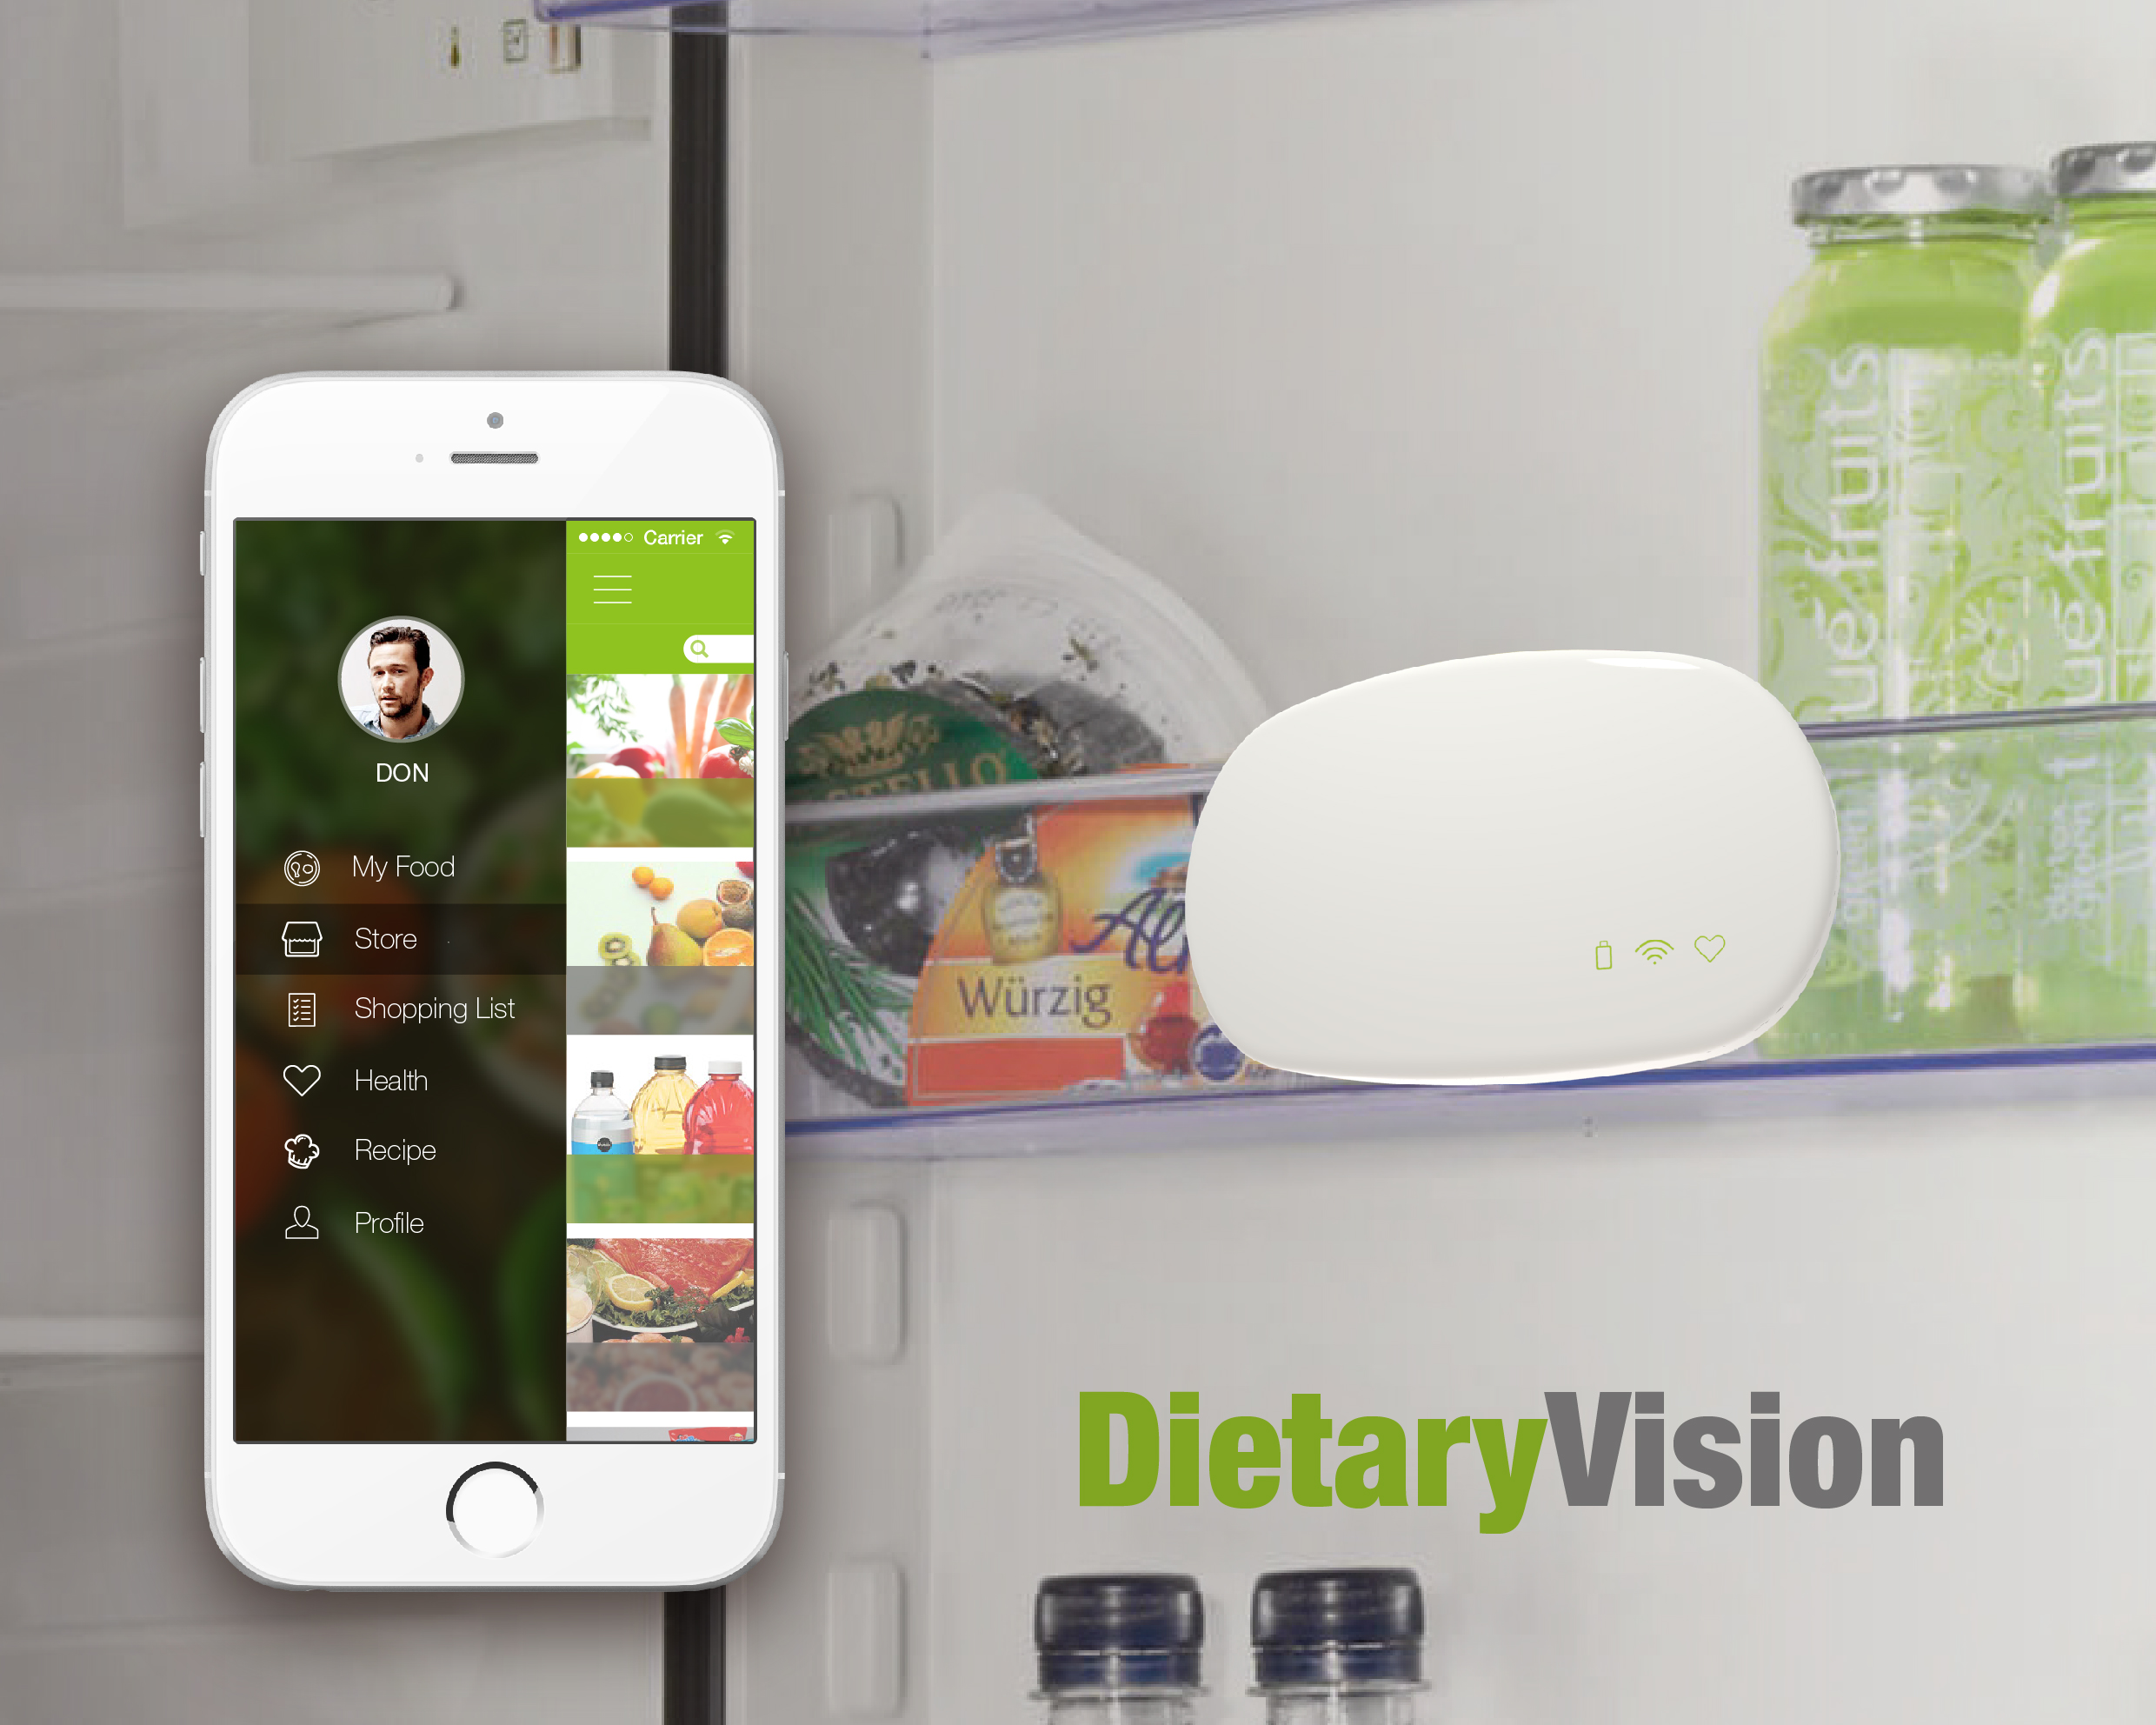 Project 3 DietaryVision, context-aware product for millennials' meal planning